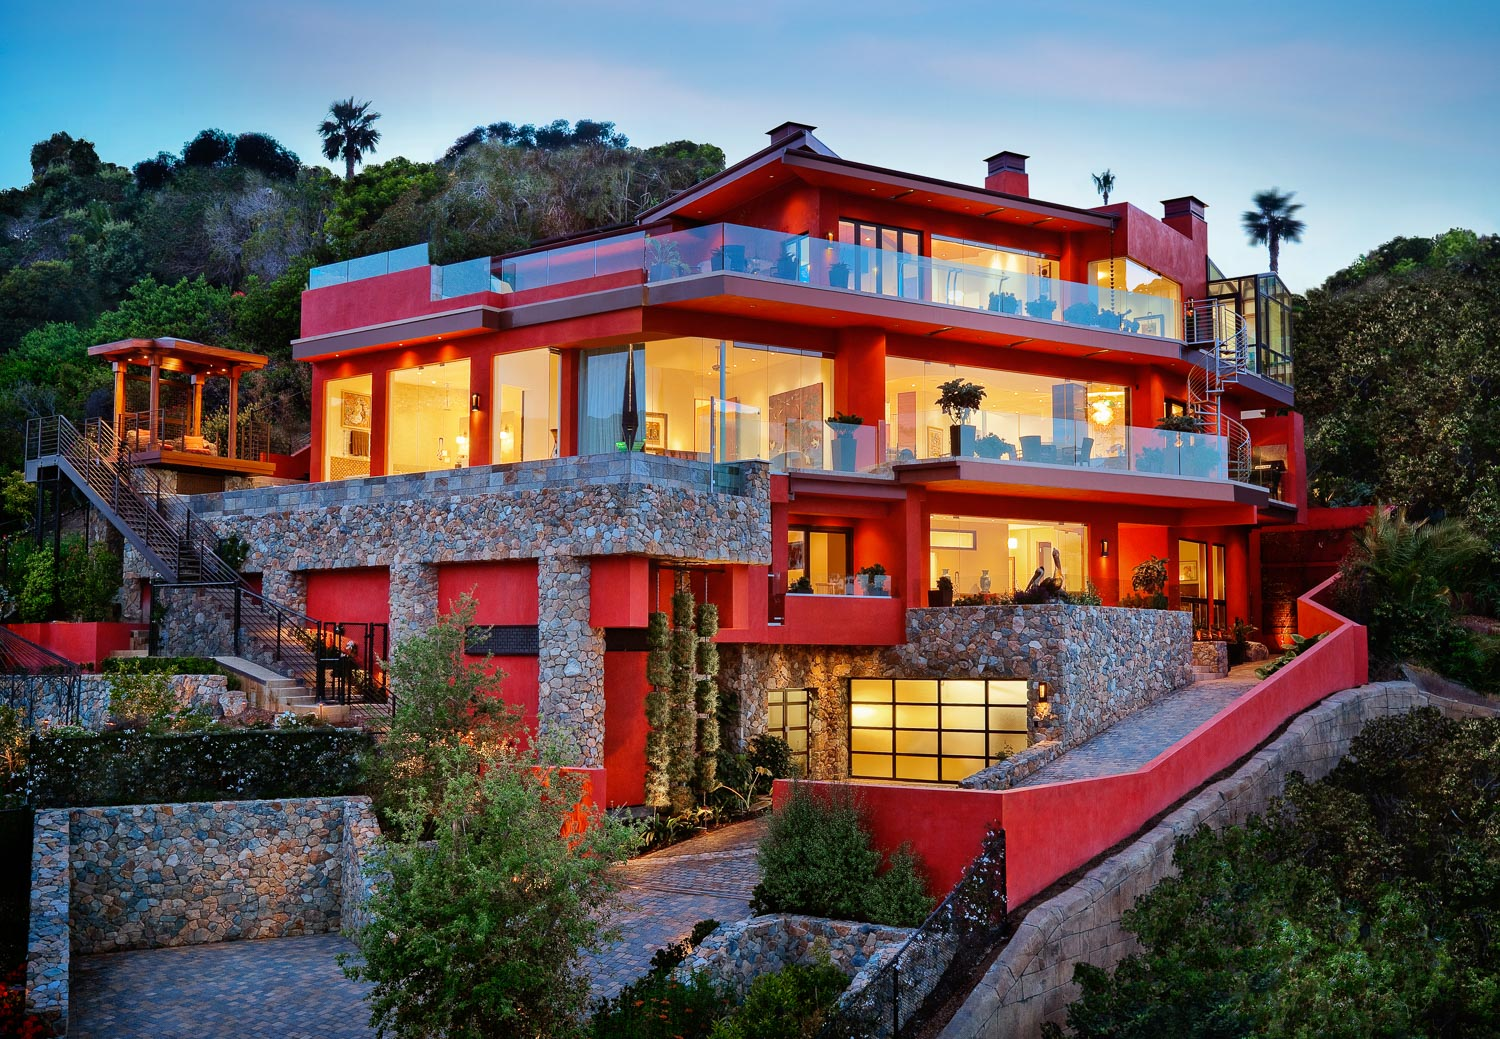 001 Catalina Island Private Residence.jpg